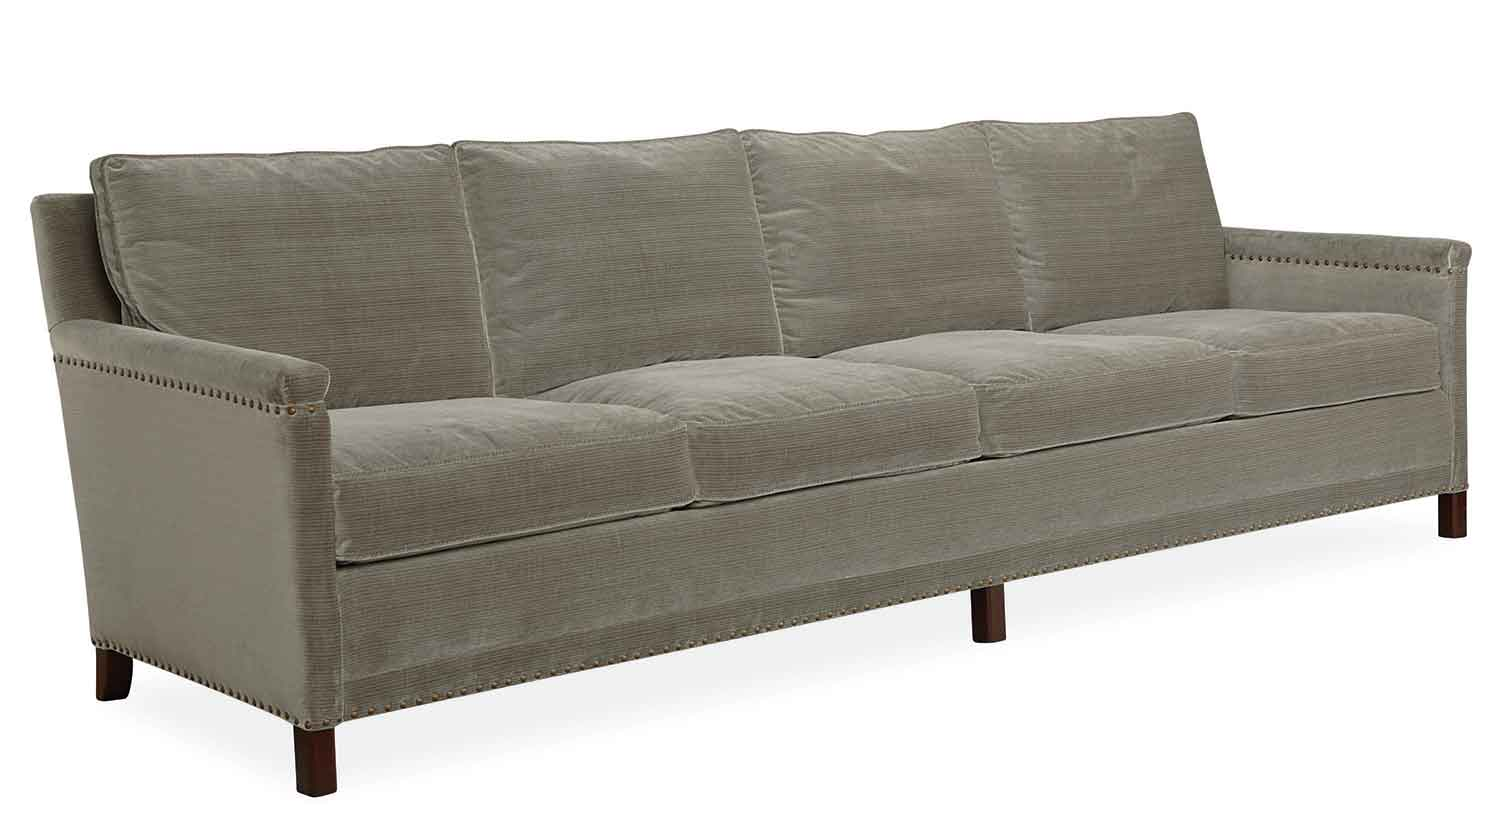 Circle Furniture Paige 4 Seat Sofa Sofas Acton Circle Furniture